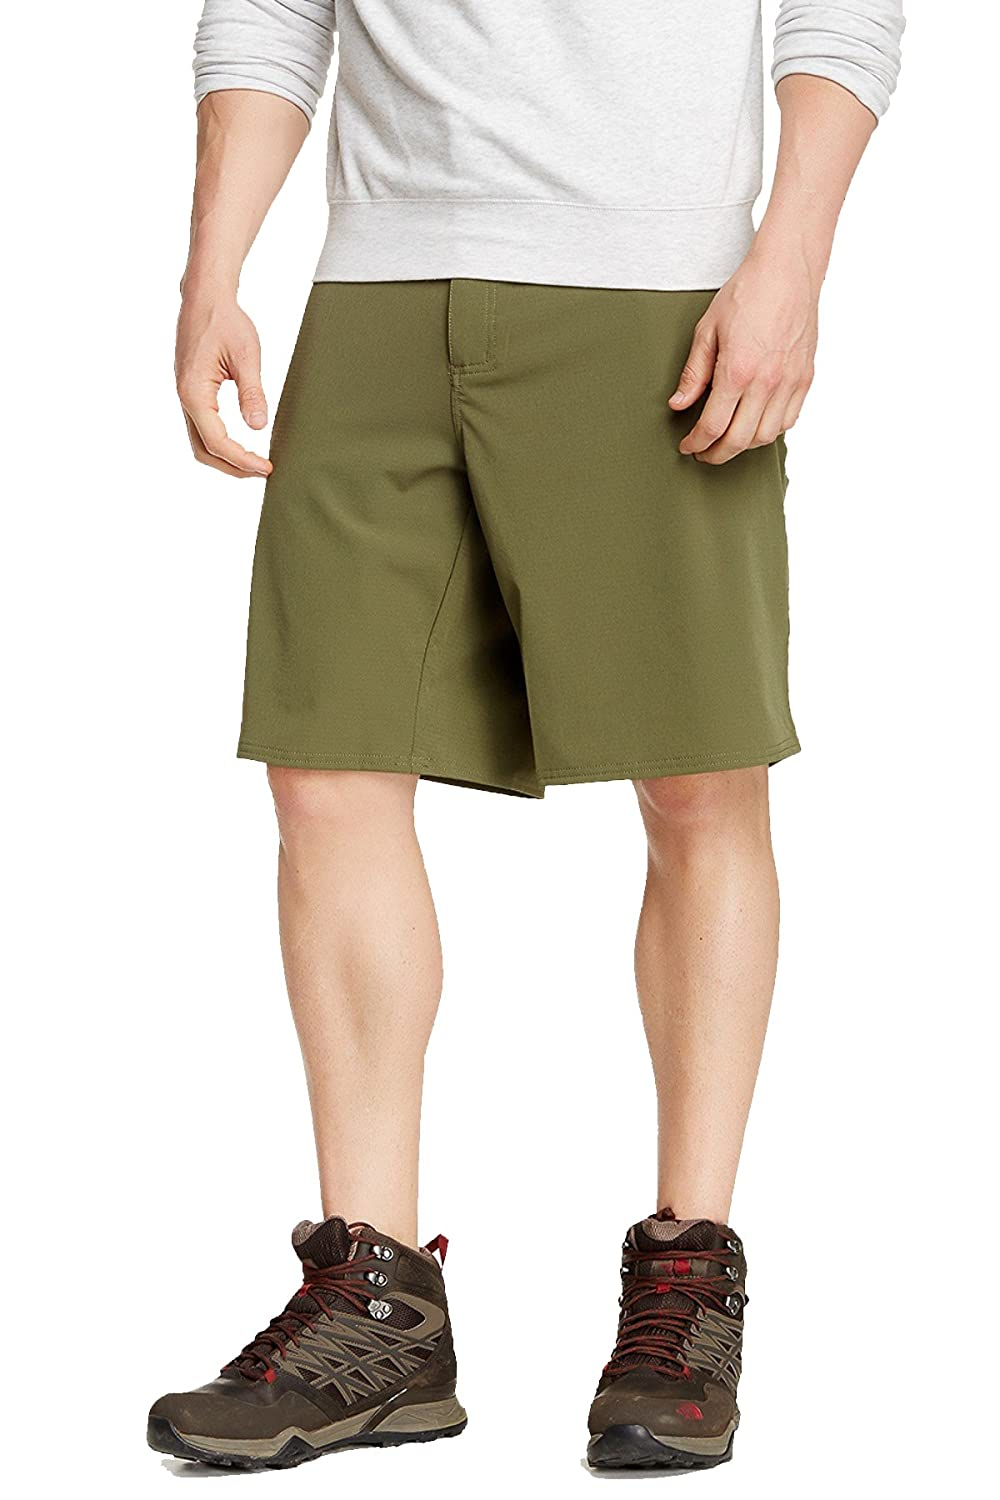 The North Face SHORTS メンズ